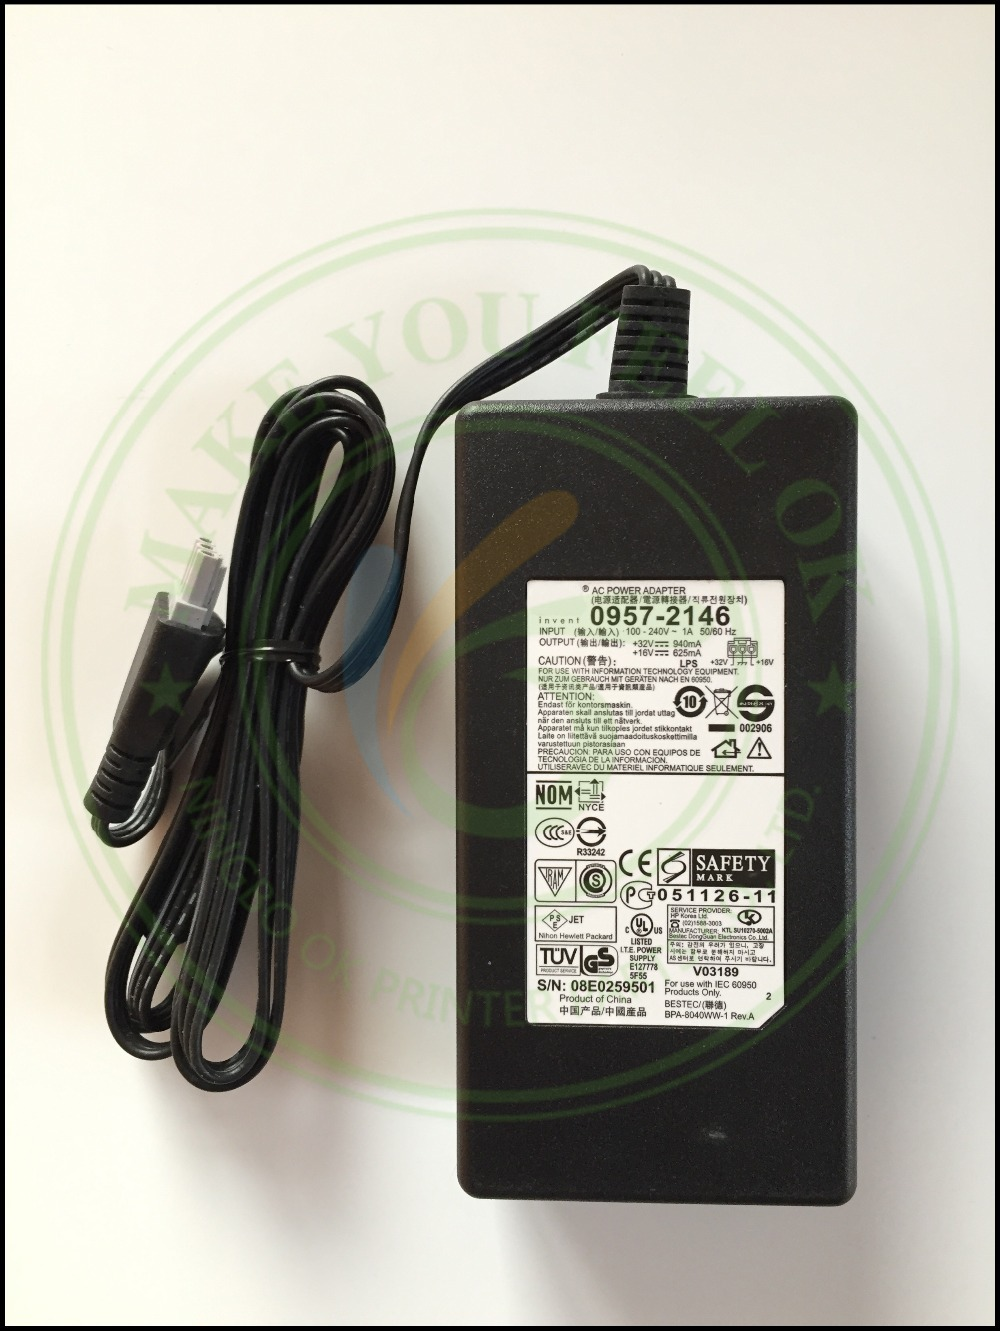 ORIGINAL NEW 0957-2146 AC Power Adapter Charger 100 - 240V 1A 50/60Hz 32V 940mA 16V 625mA For HP Printer Scanner